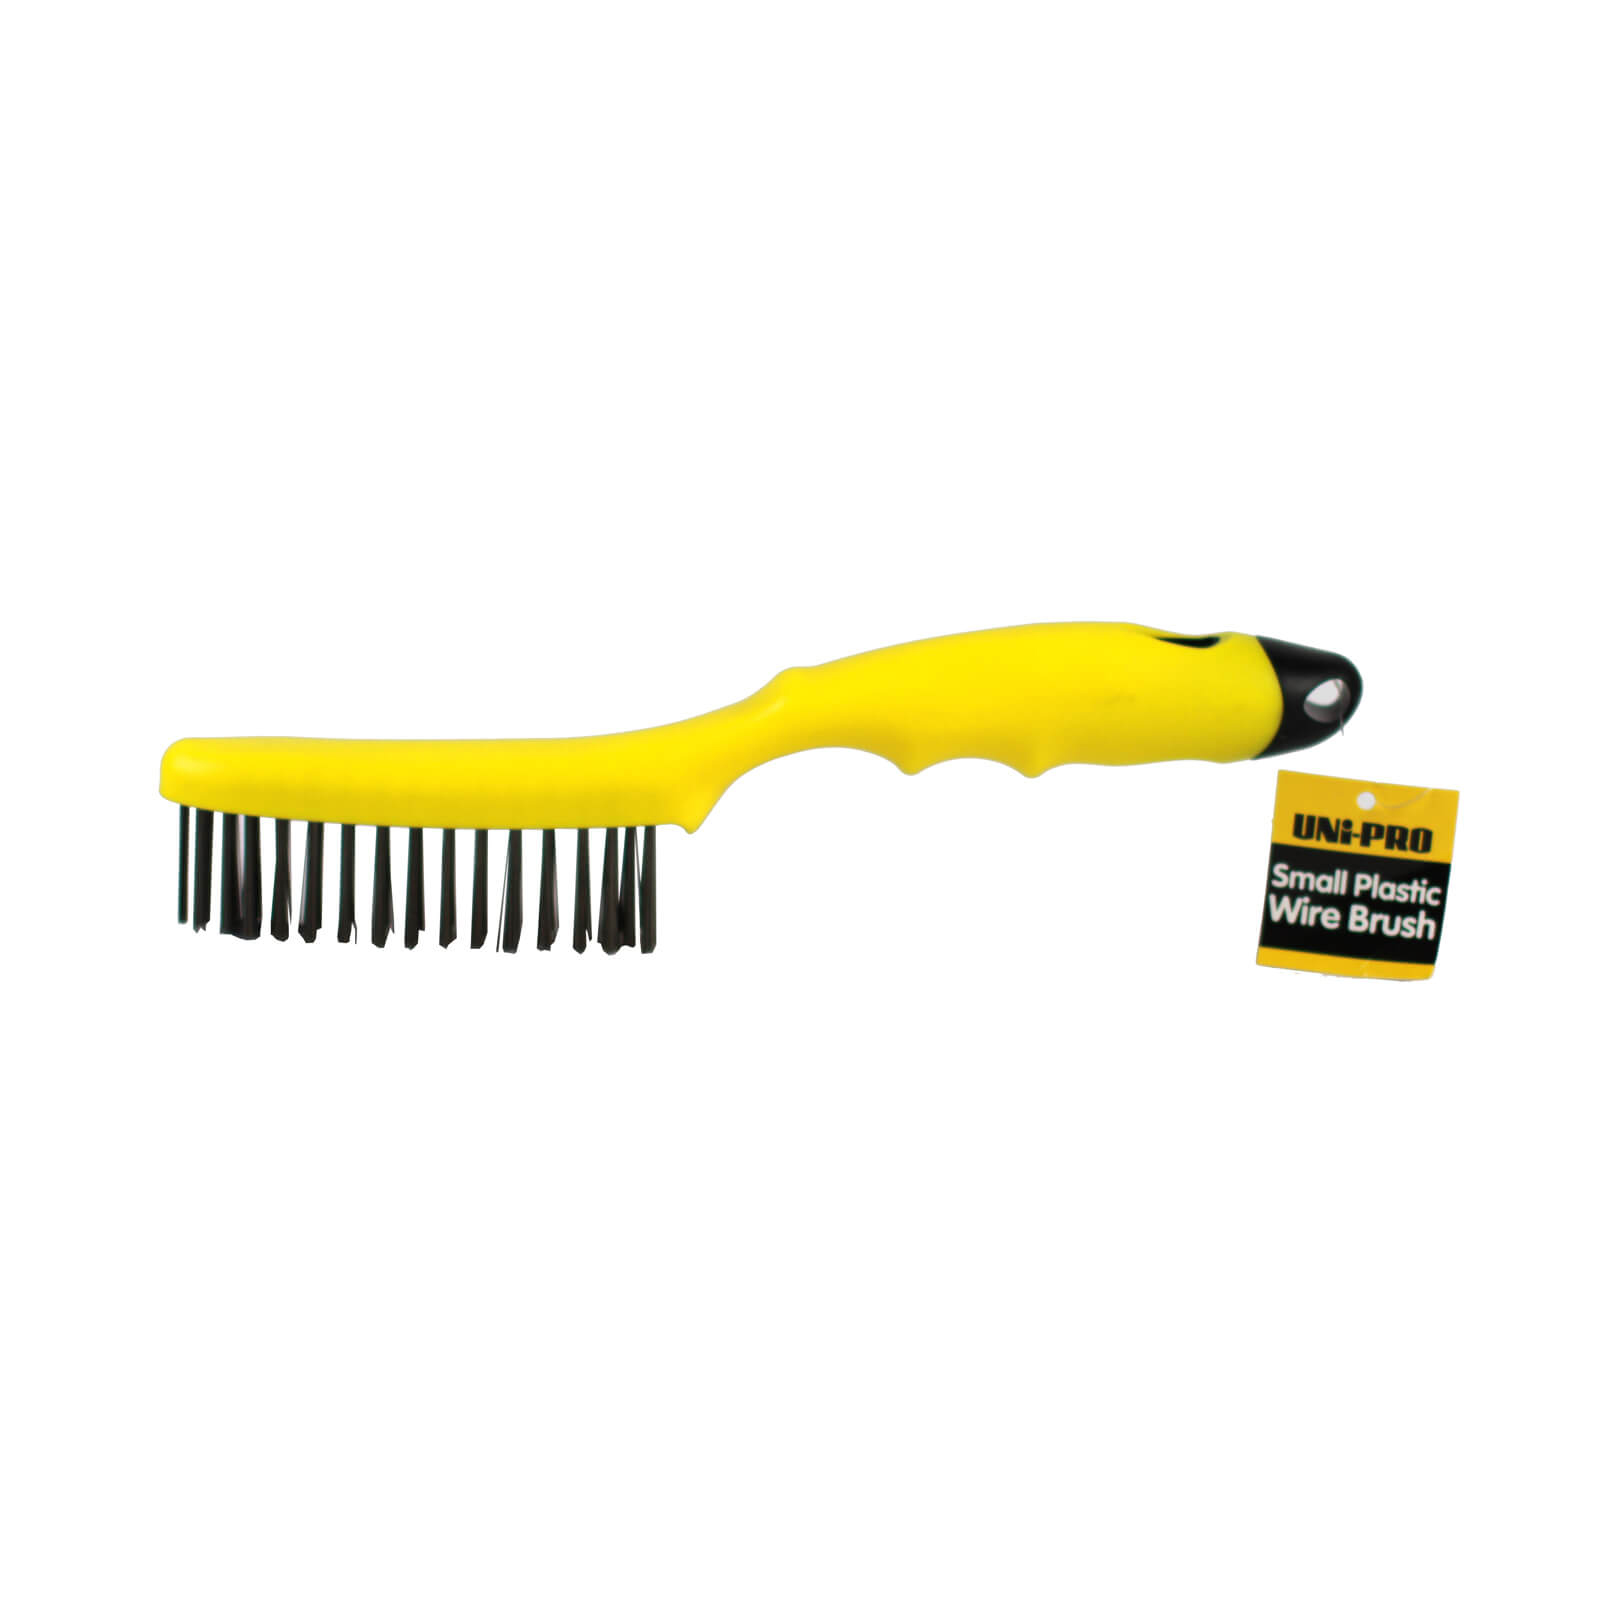 UNi-PRO Wire Brush Black Plastic - Small